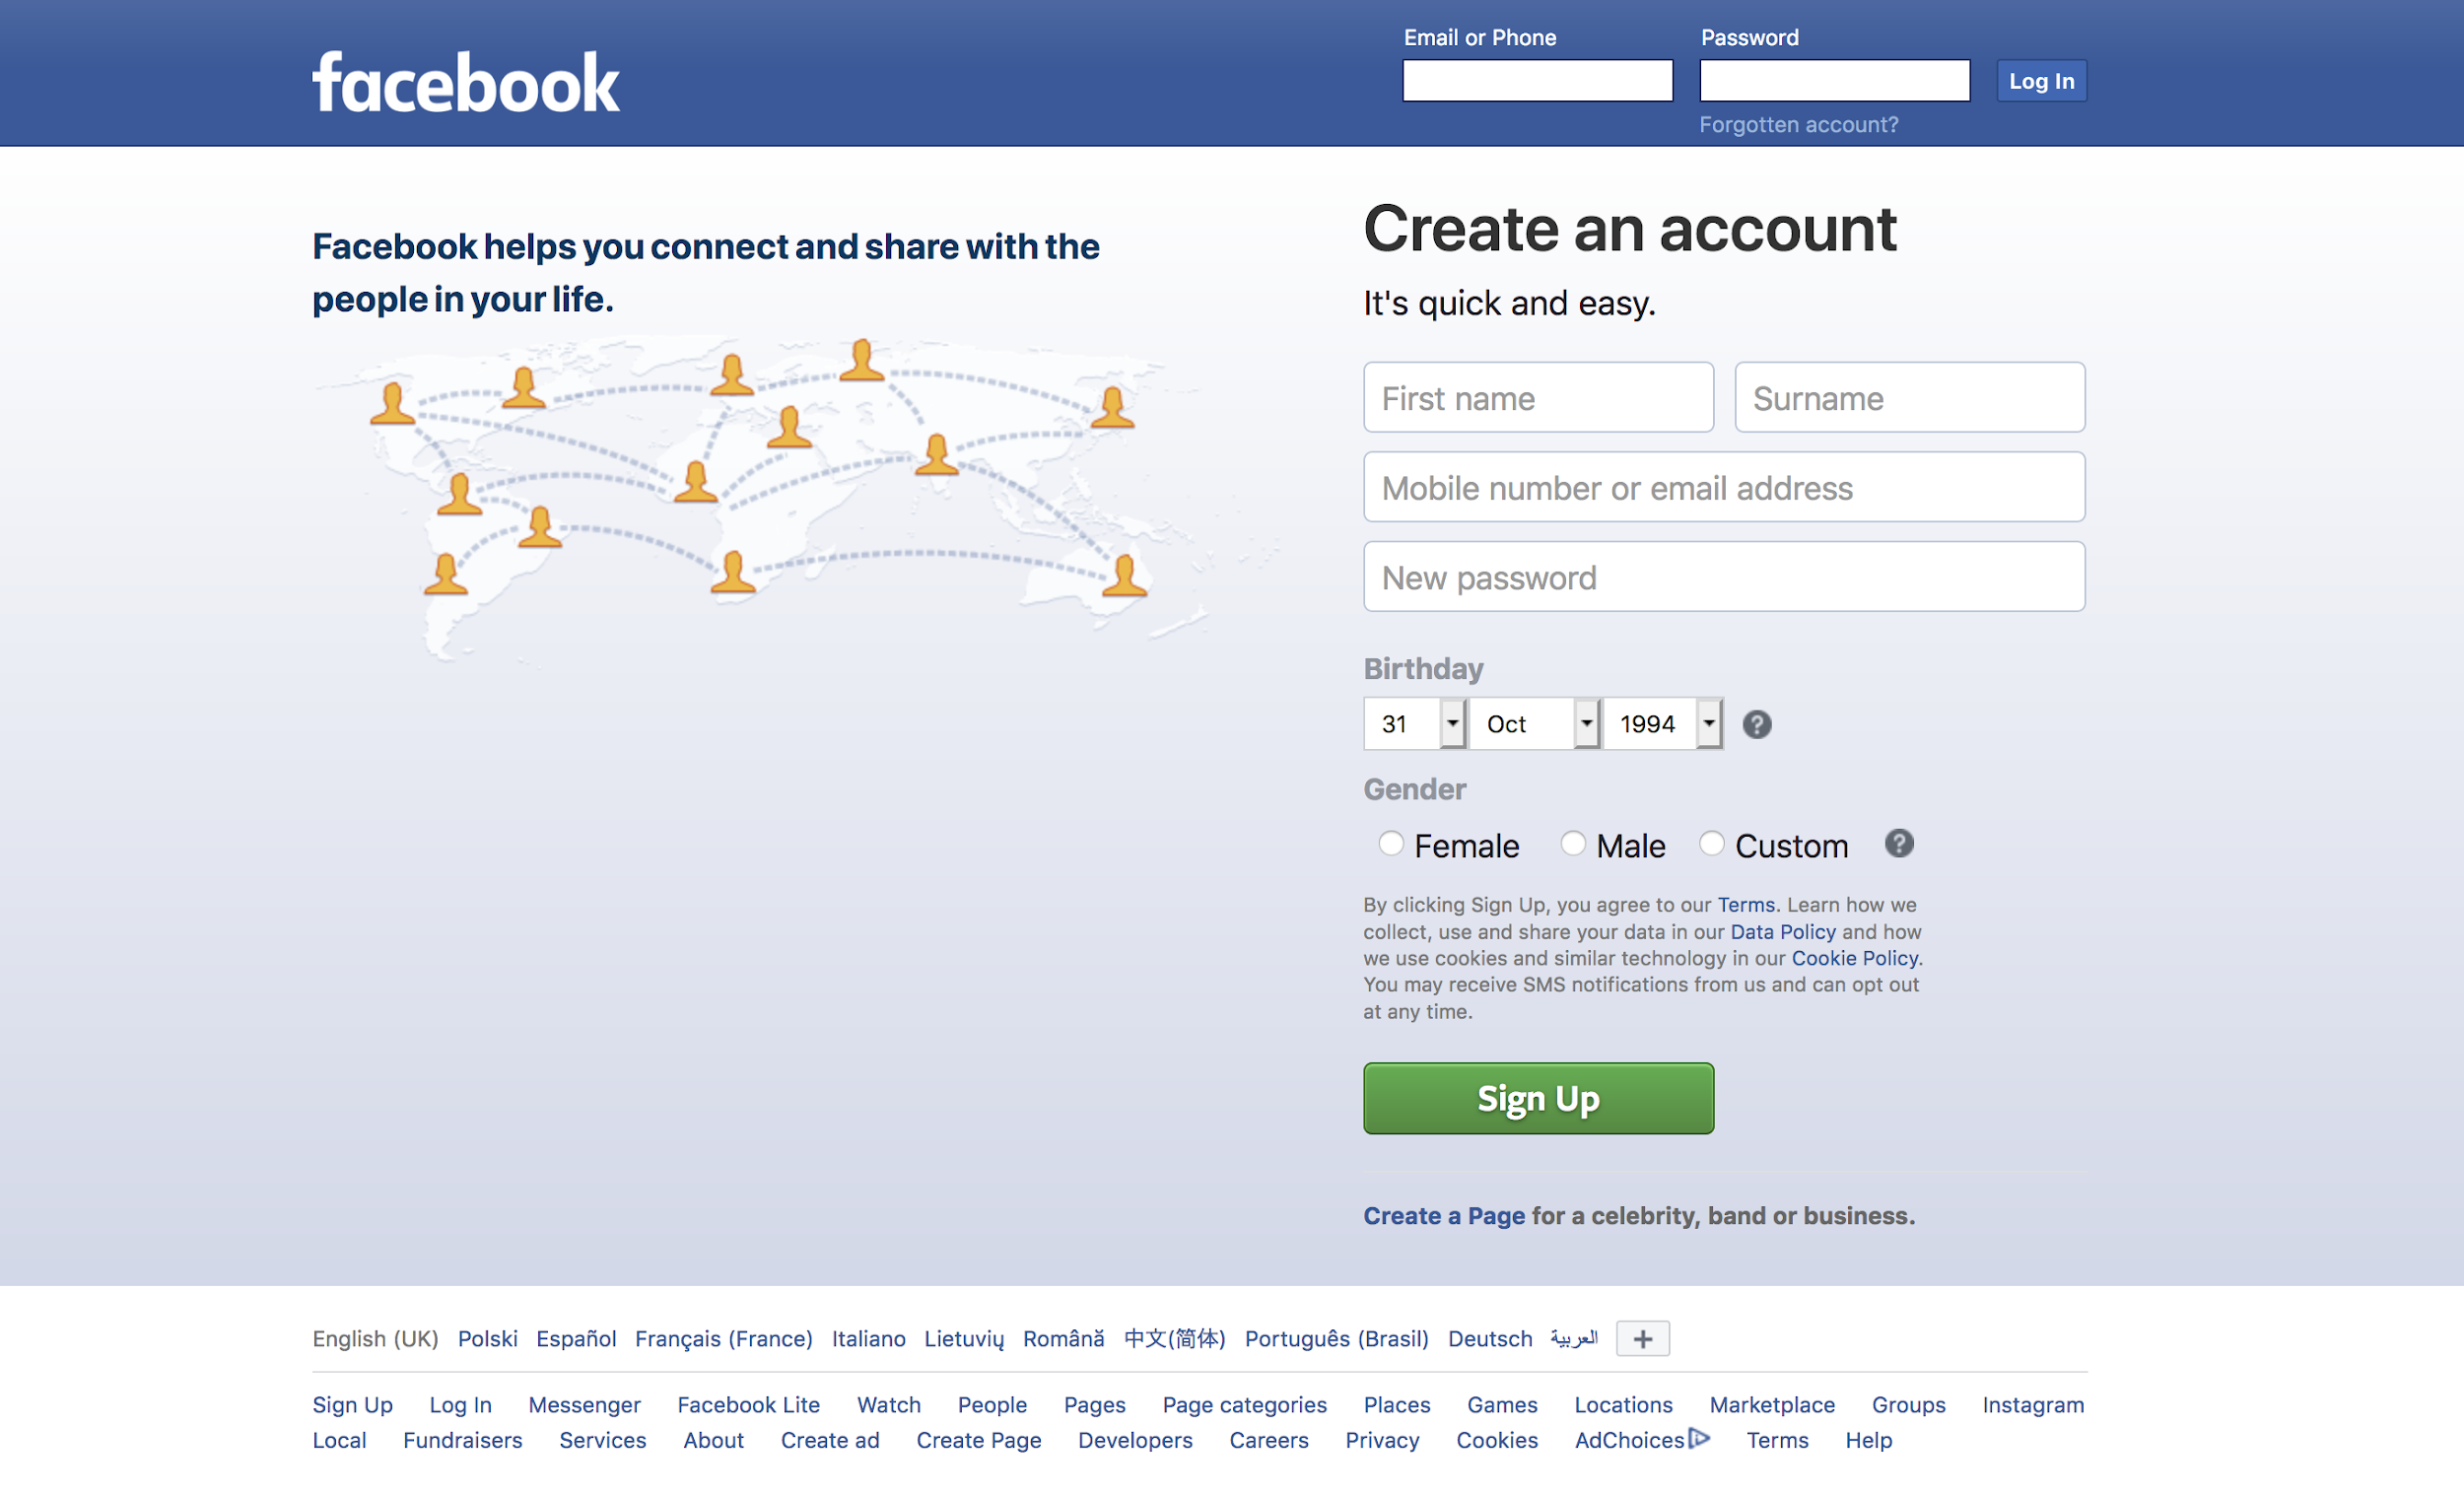 Cross-cultural user interface design Facebook in English